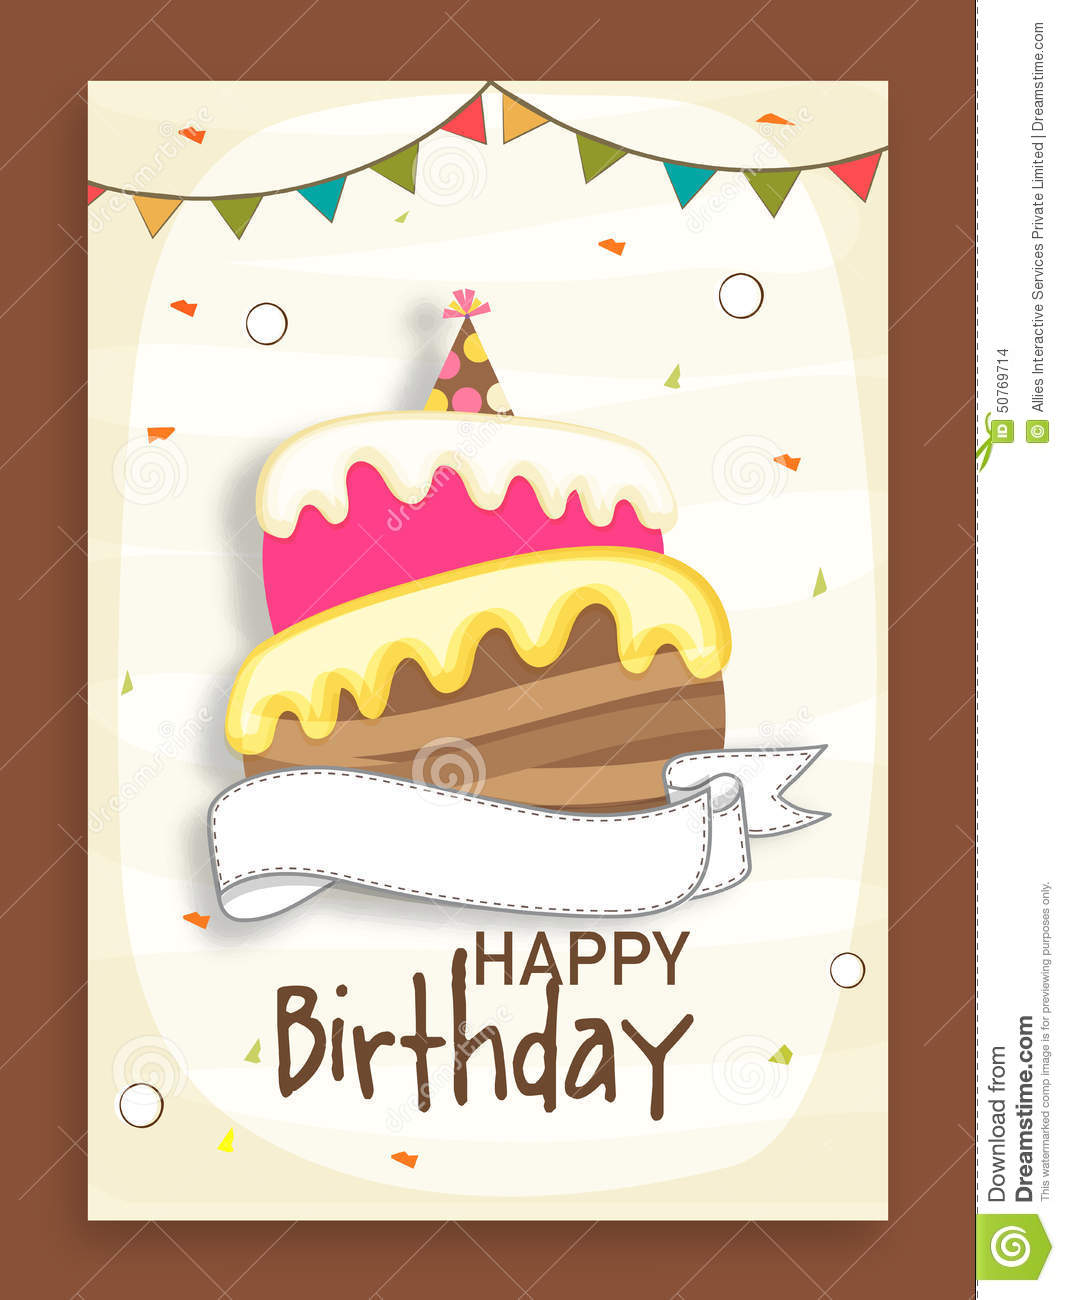 Birthday Party Celebration Invitation Card Design Stock